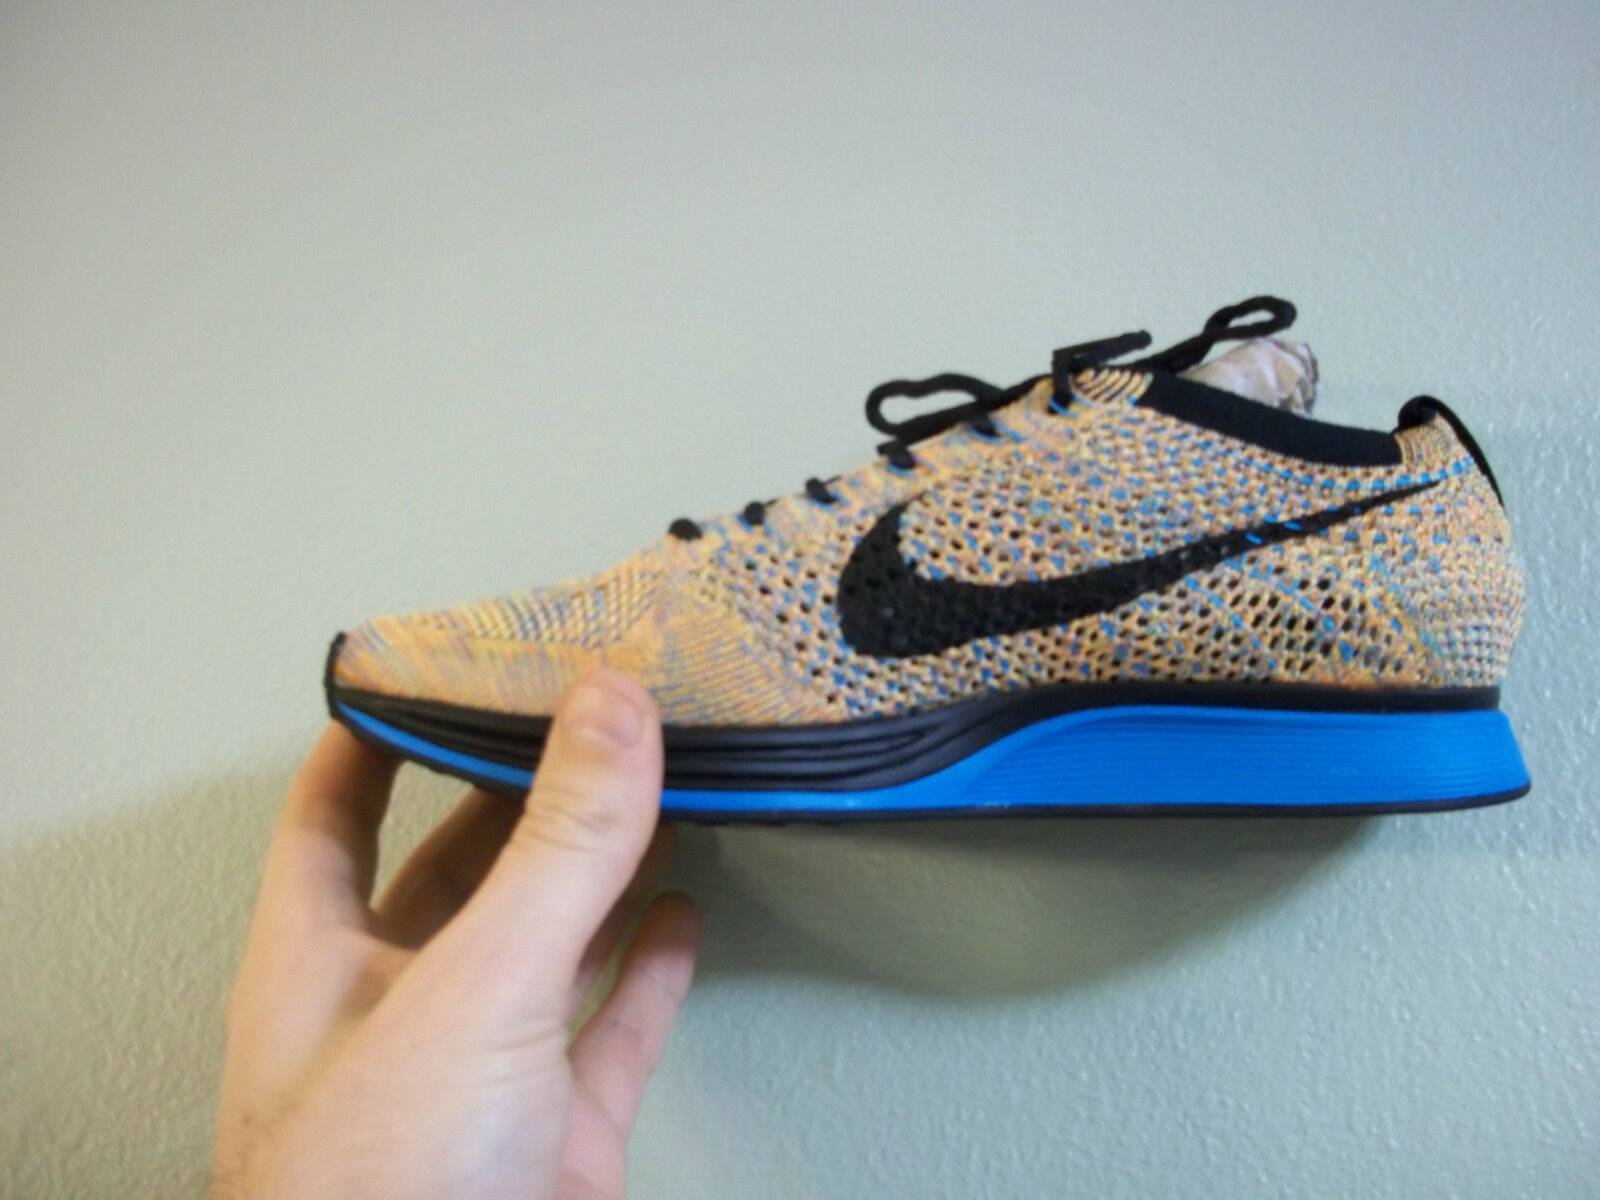 Special limited time Men's Nike Flyknit Racer size 6.5 Price reduction